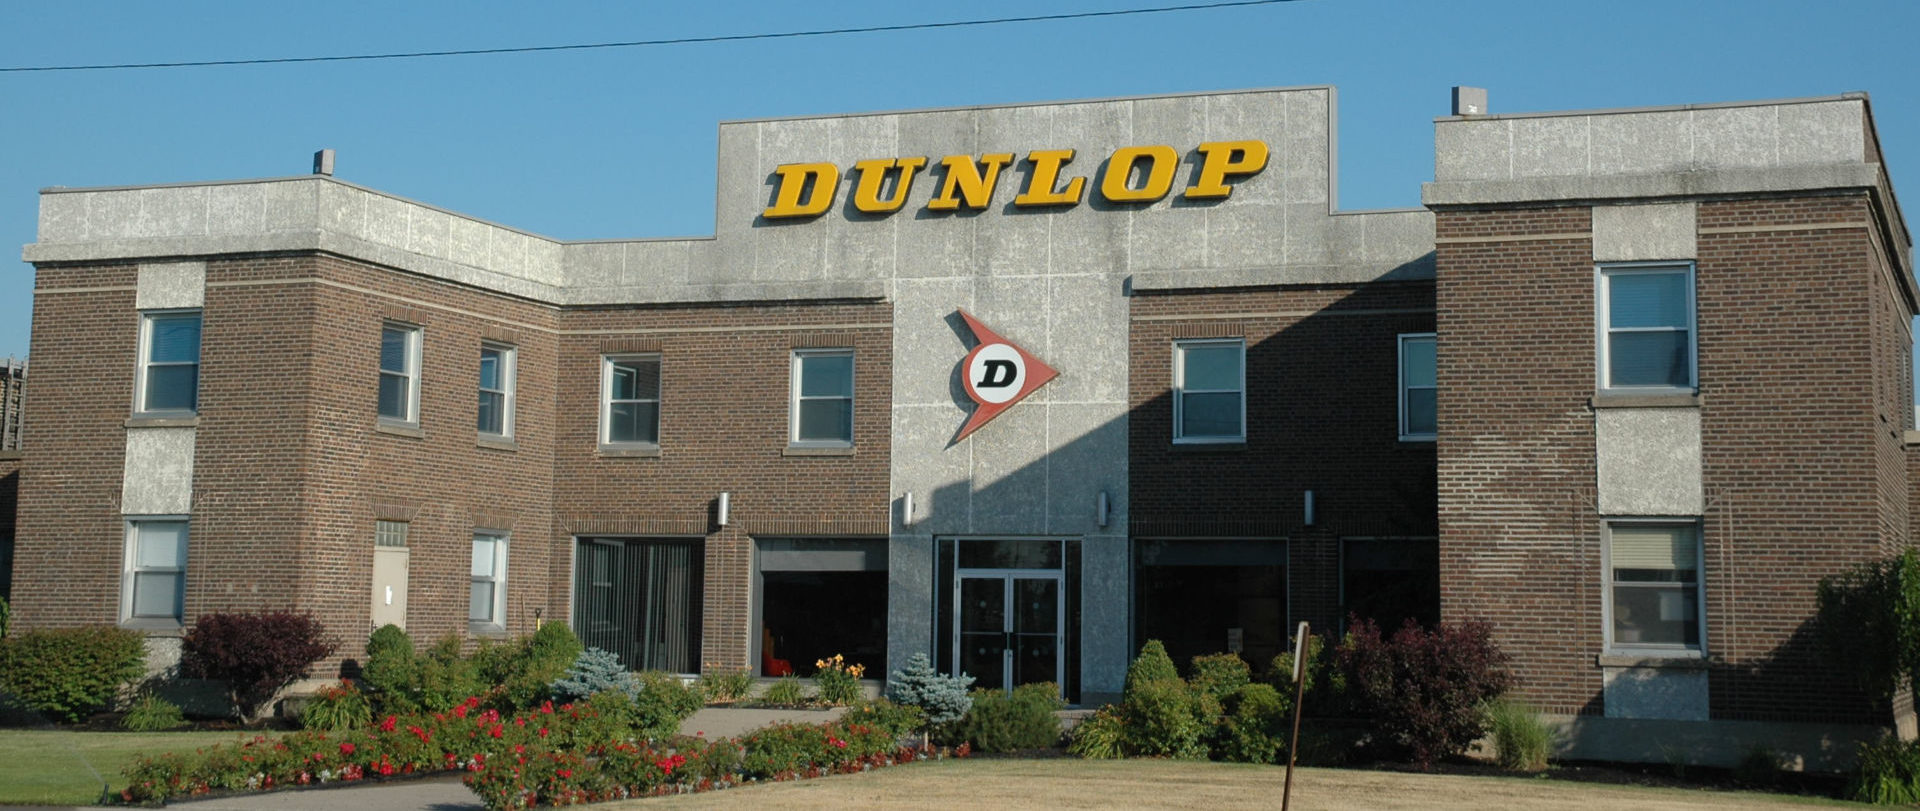 Dunlop's motorcycle tire manufacturing facility in Buffalo, New York. Photo by David Swarts.